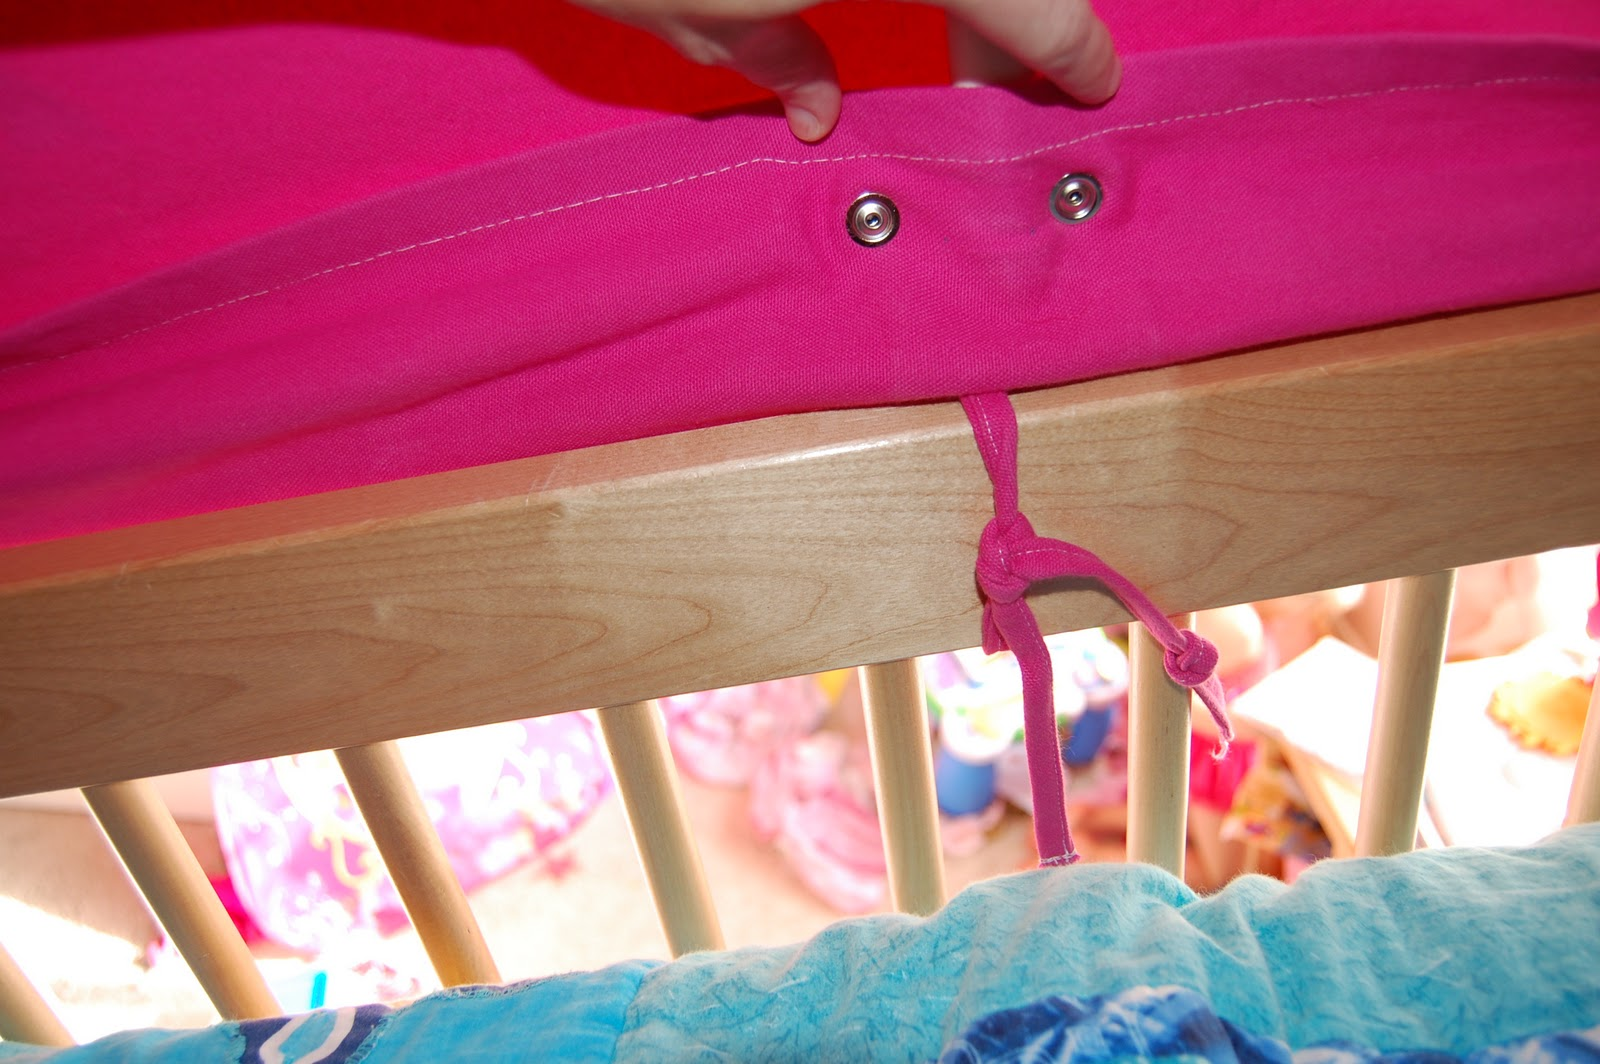 We attached the fabric to the PVC pipe with heavy-duty snaps. We also reinforced the fabric where we attached the snaps with pellon (fusible interfacing ... & Everyoneu0027s Excited and Confused: Pictures of the Top Bunk Bed Tent ...